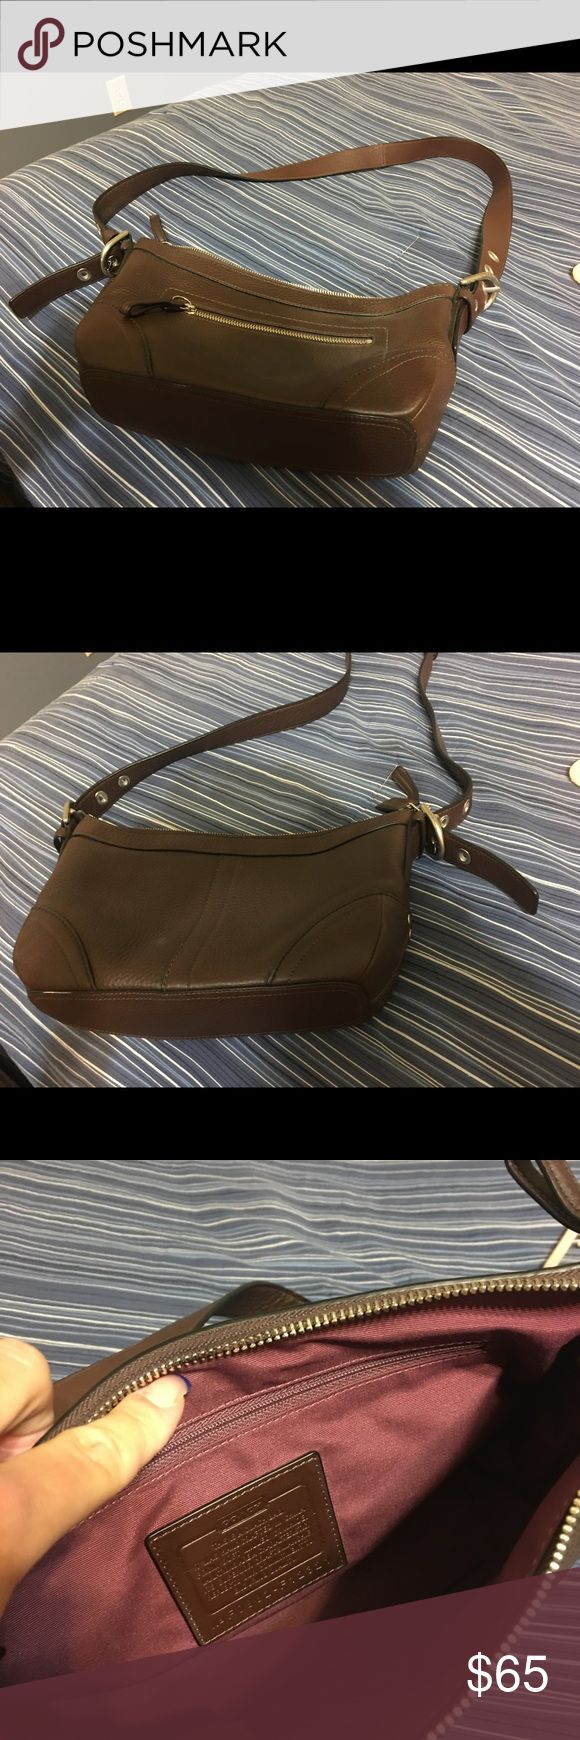 Coach Purse Brown leather Coach Purse. Perfect condition- never been used. Coach Bags Shoulder Bags